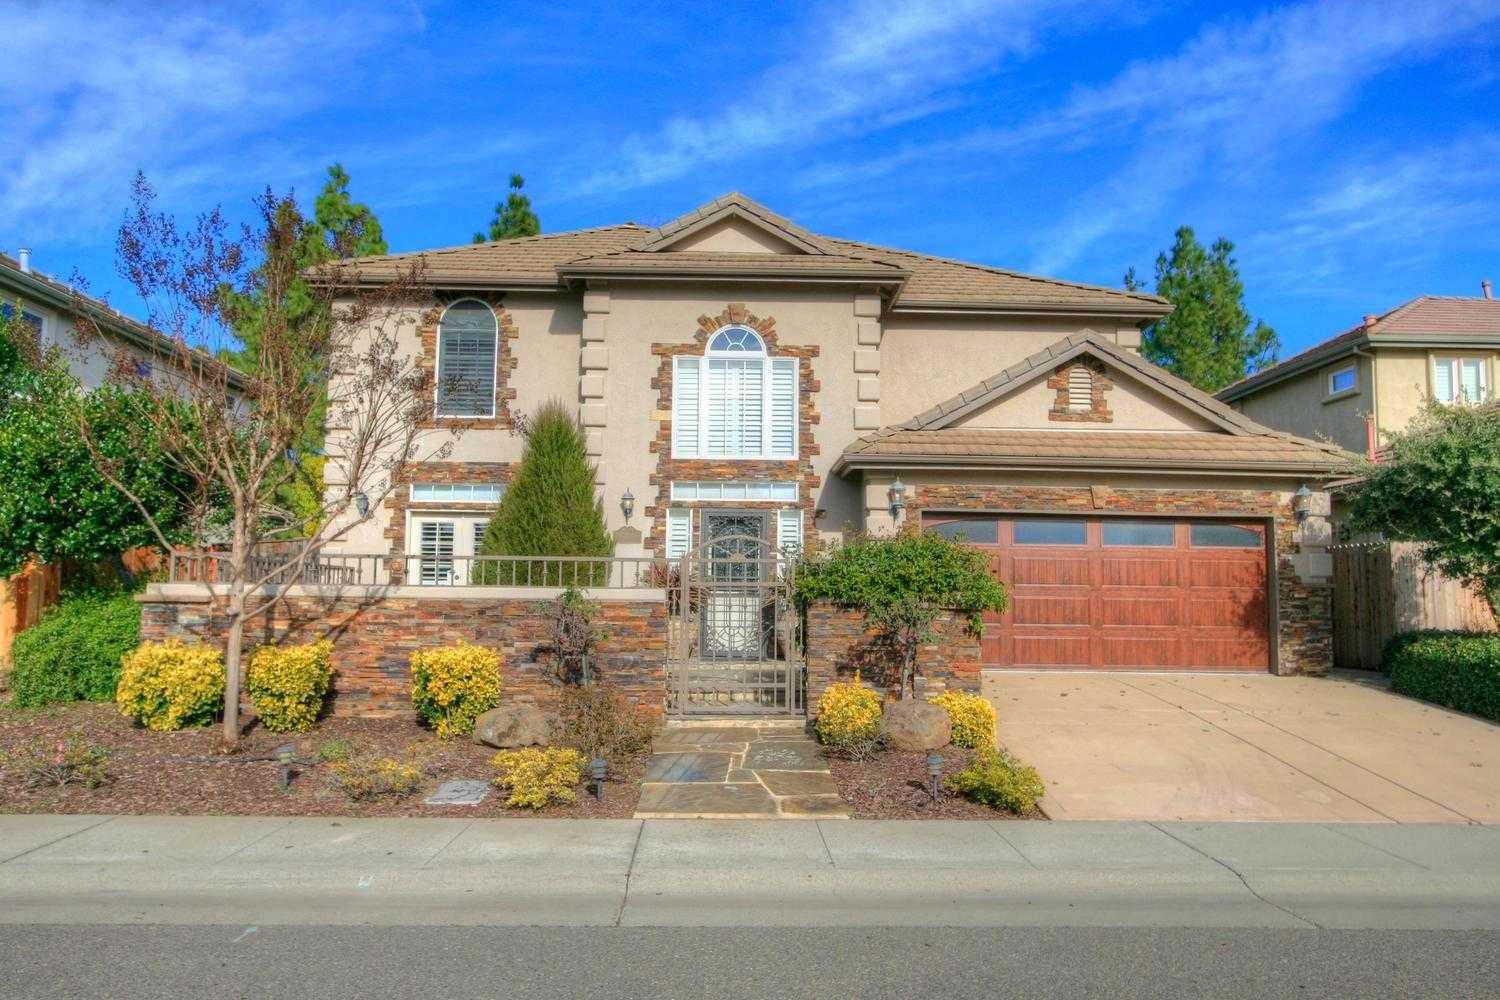 $839,000 - 4Br/3Ba -  for Sale in Willow Creek 3, Davis